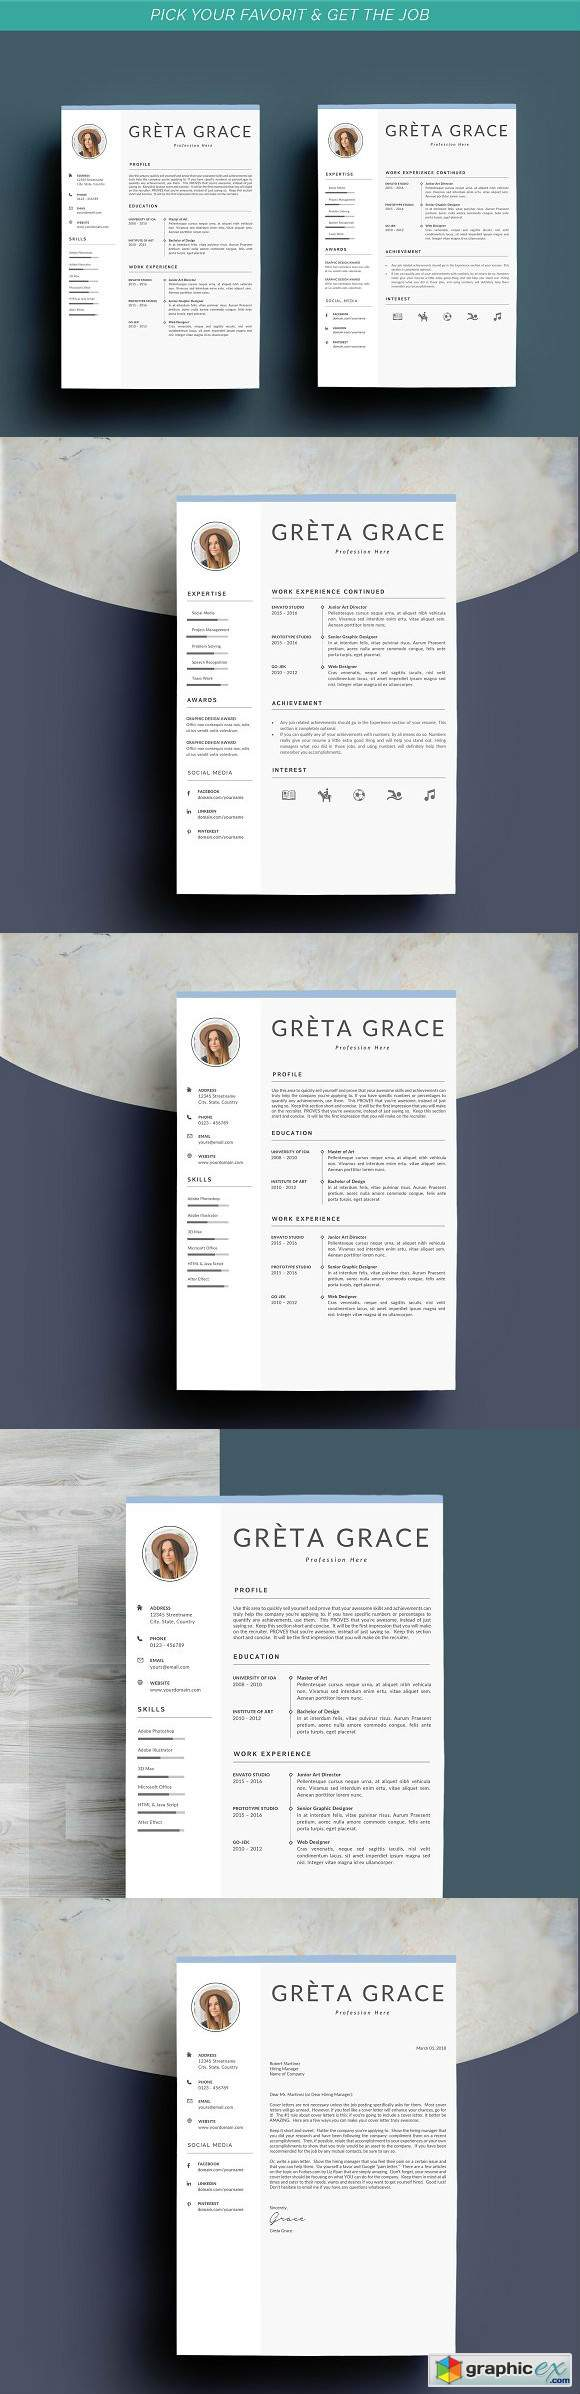 Professional Resume Template Clove